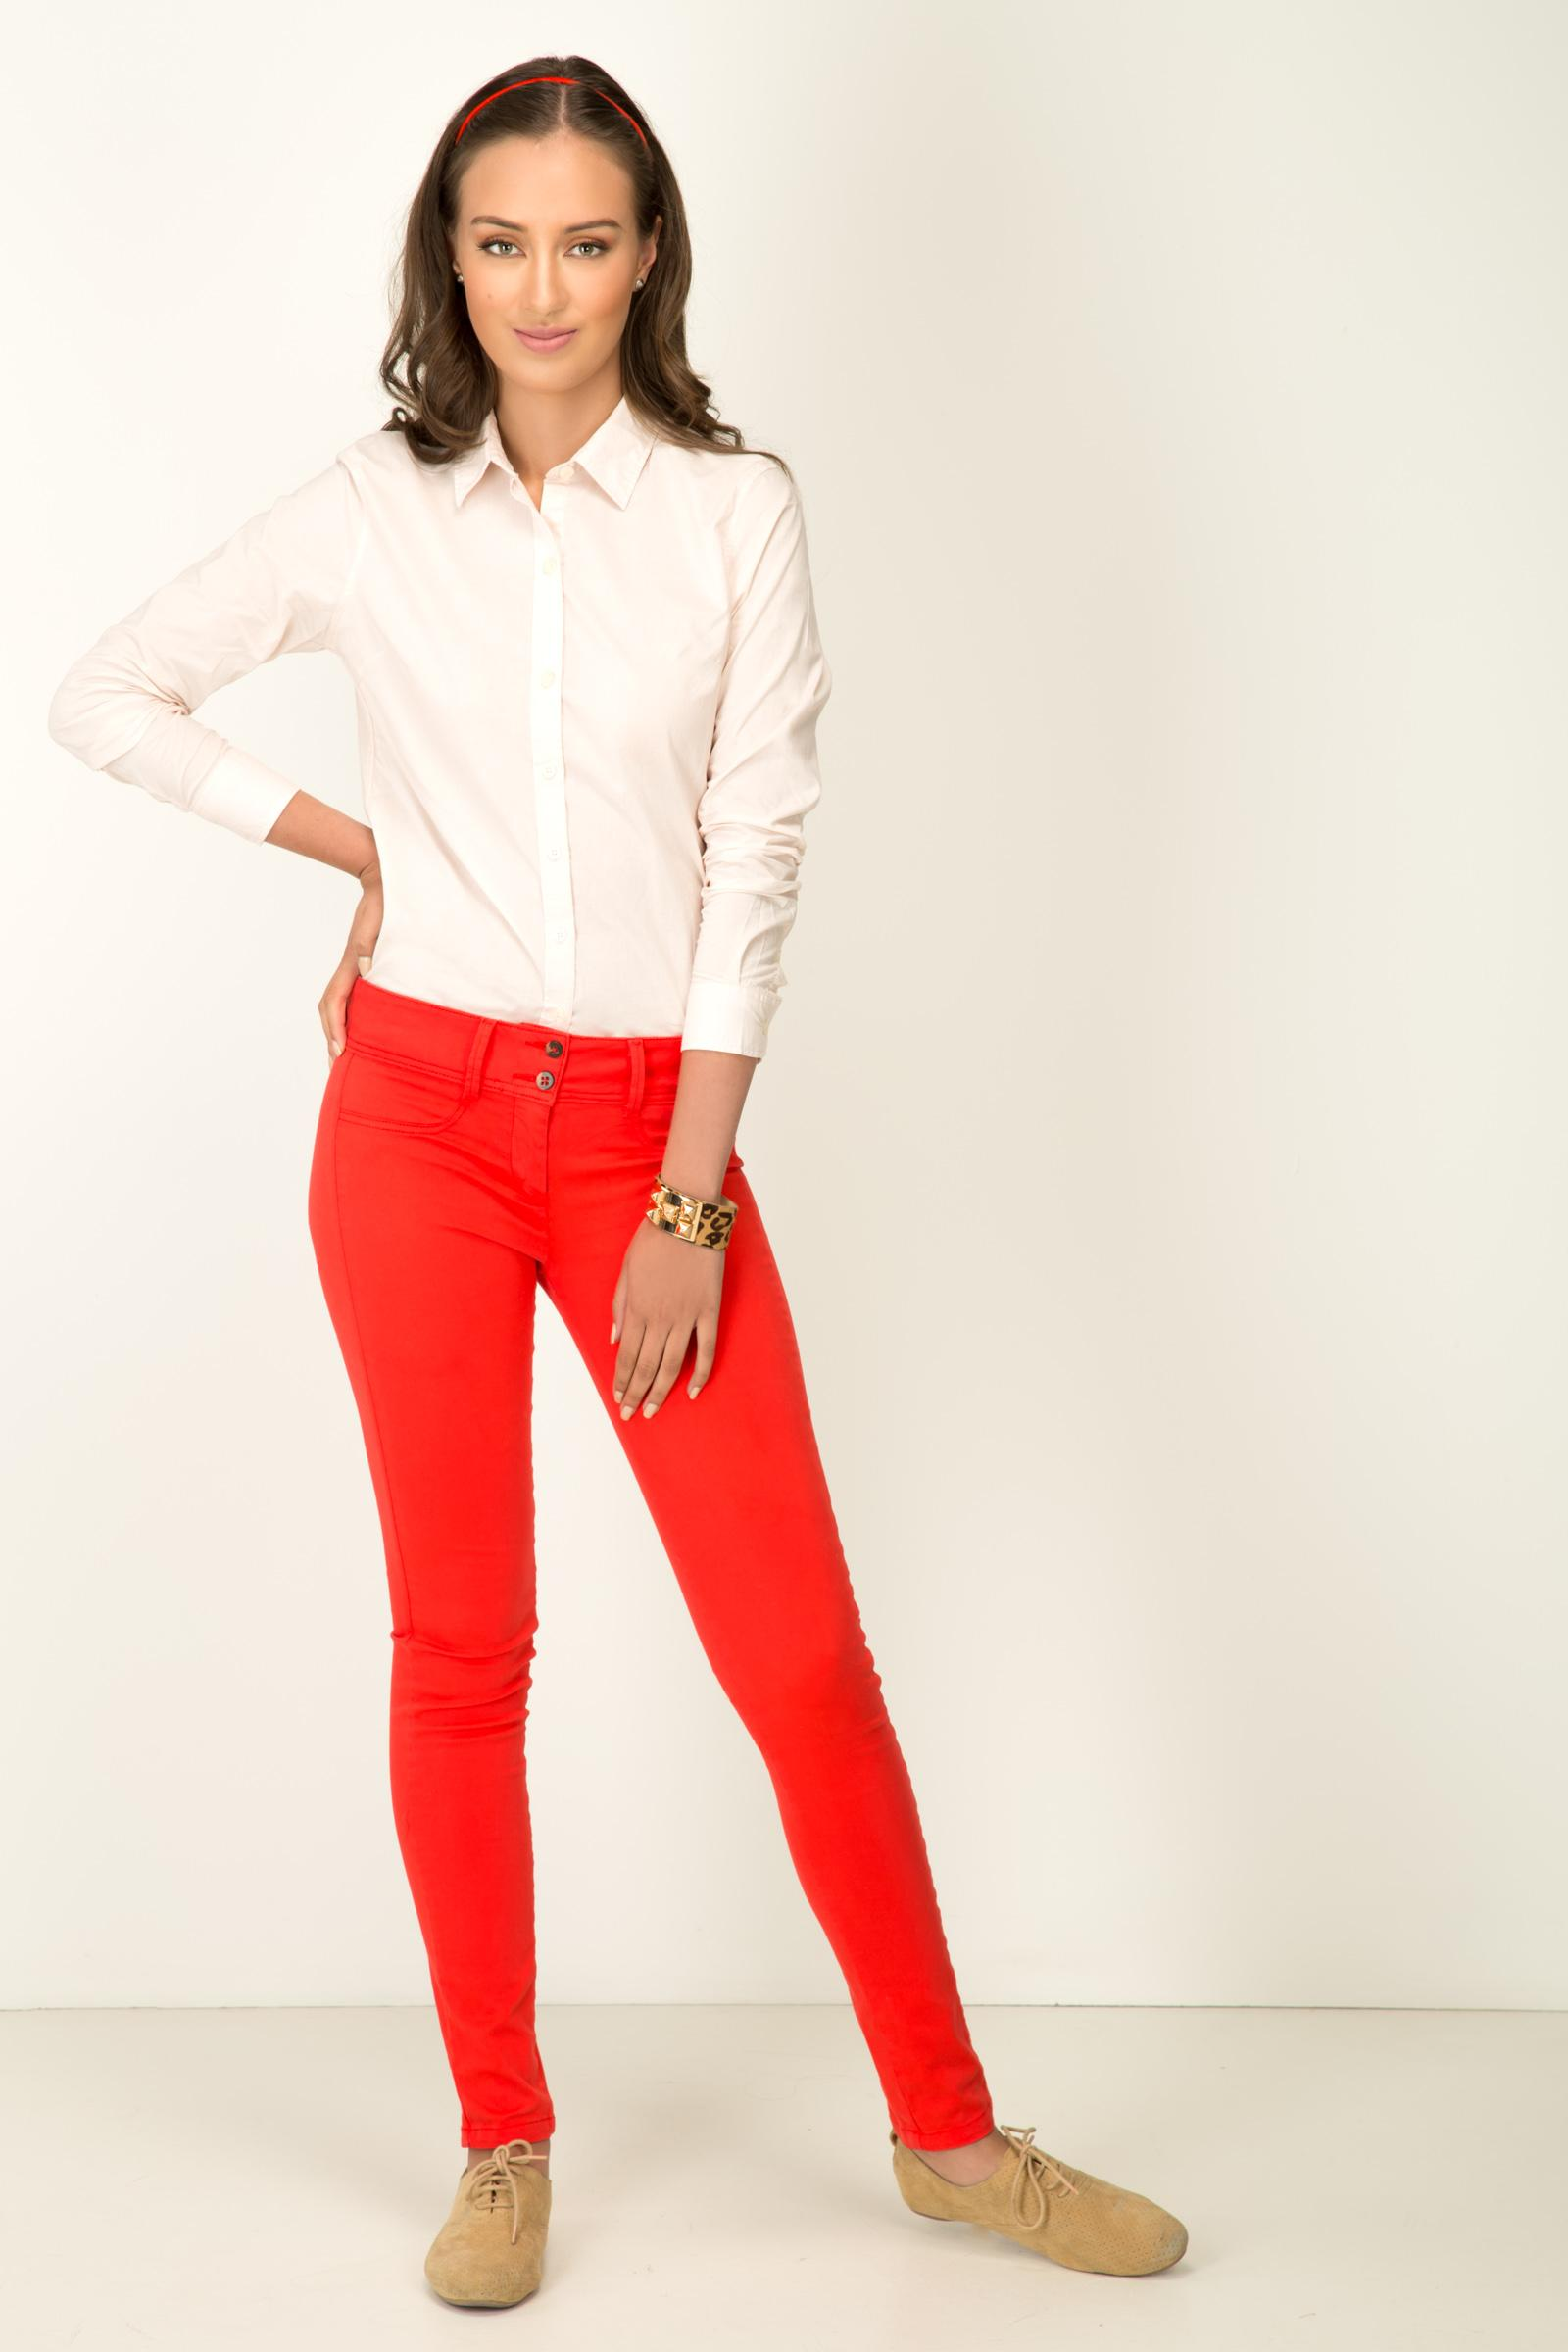 College-PANTALON PRONTO MIAT 10 JEGGINS 1/16